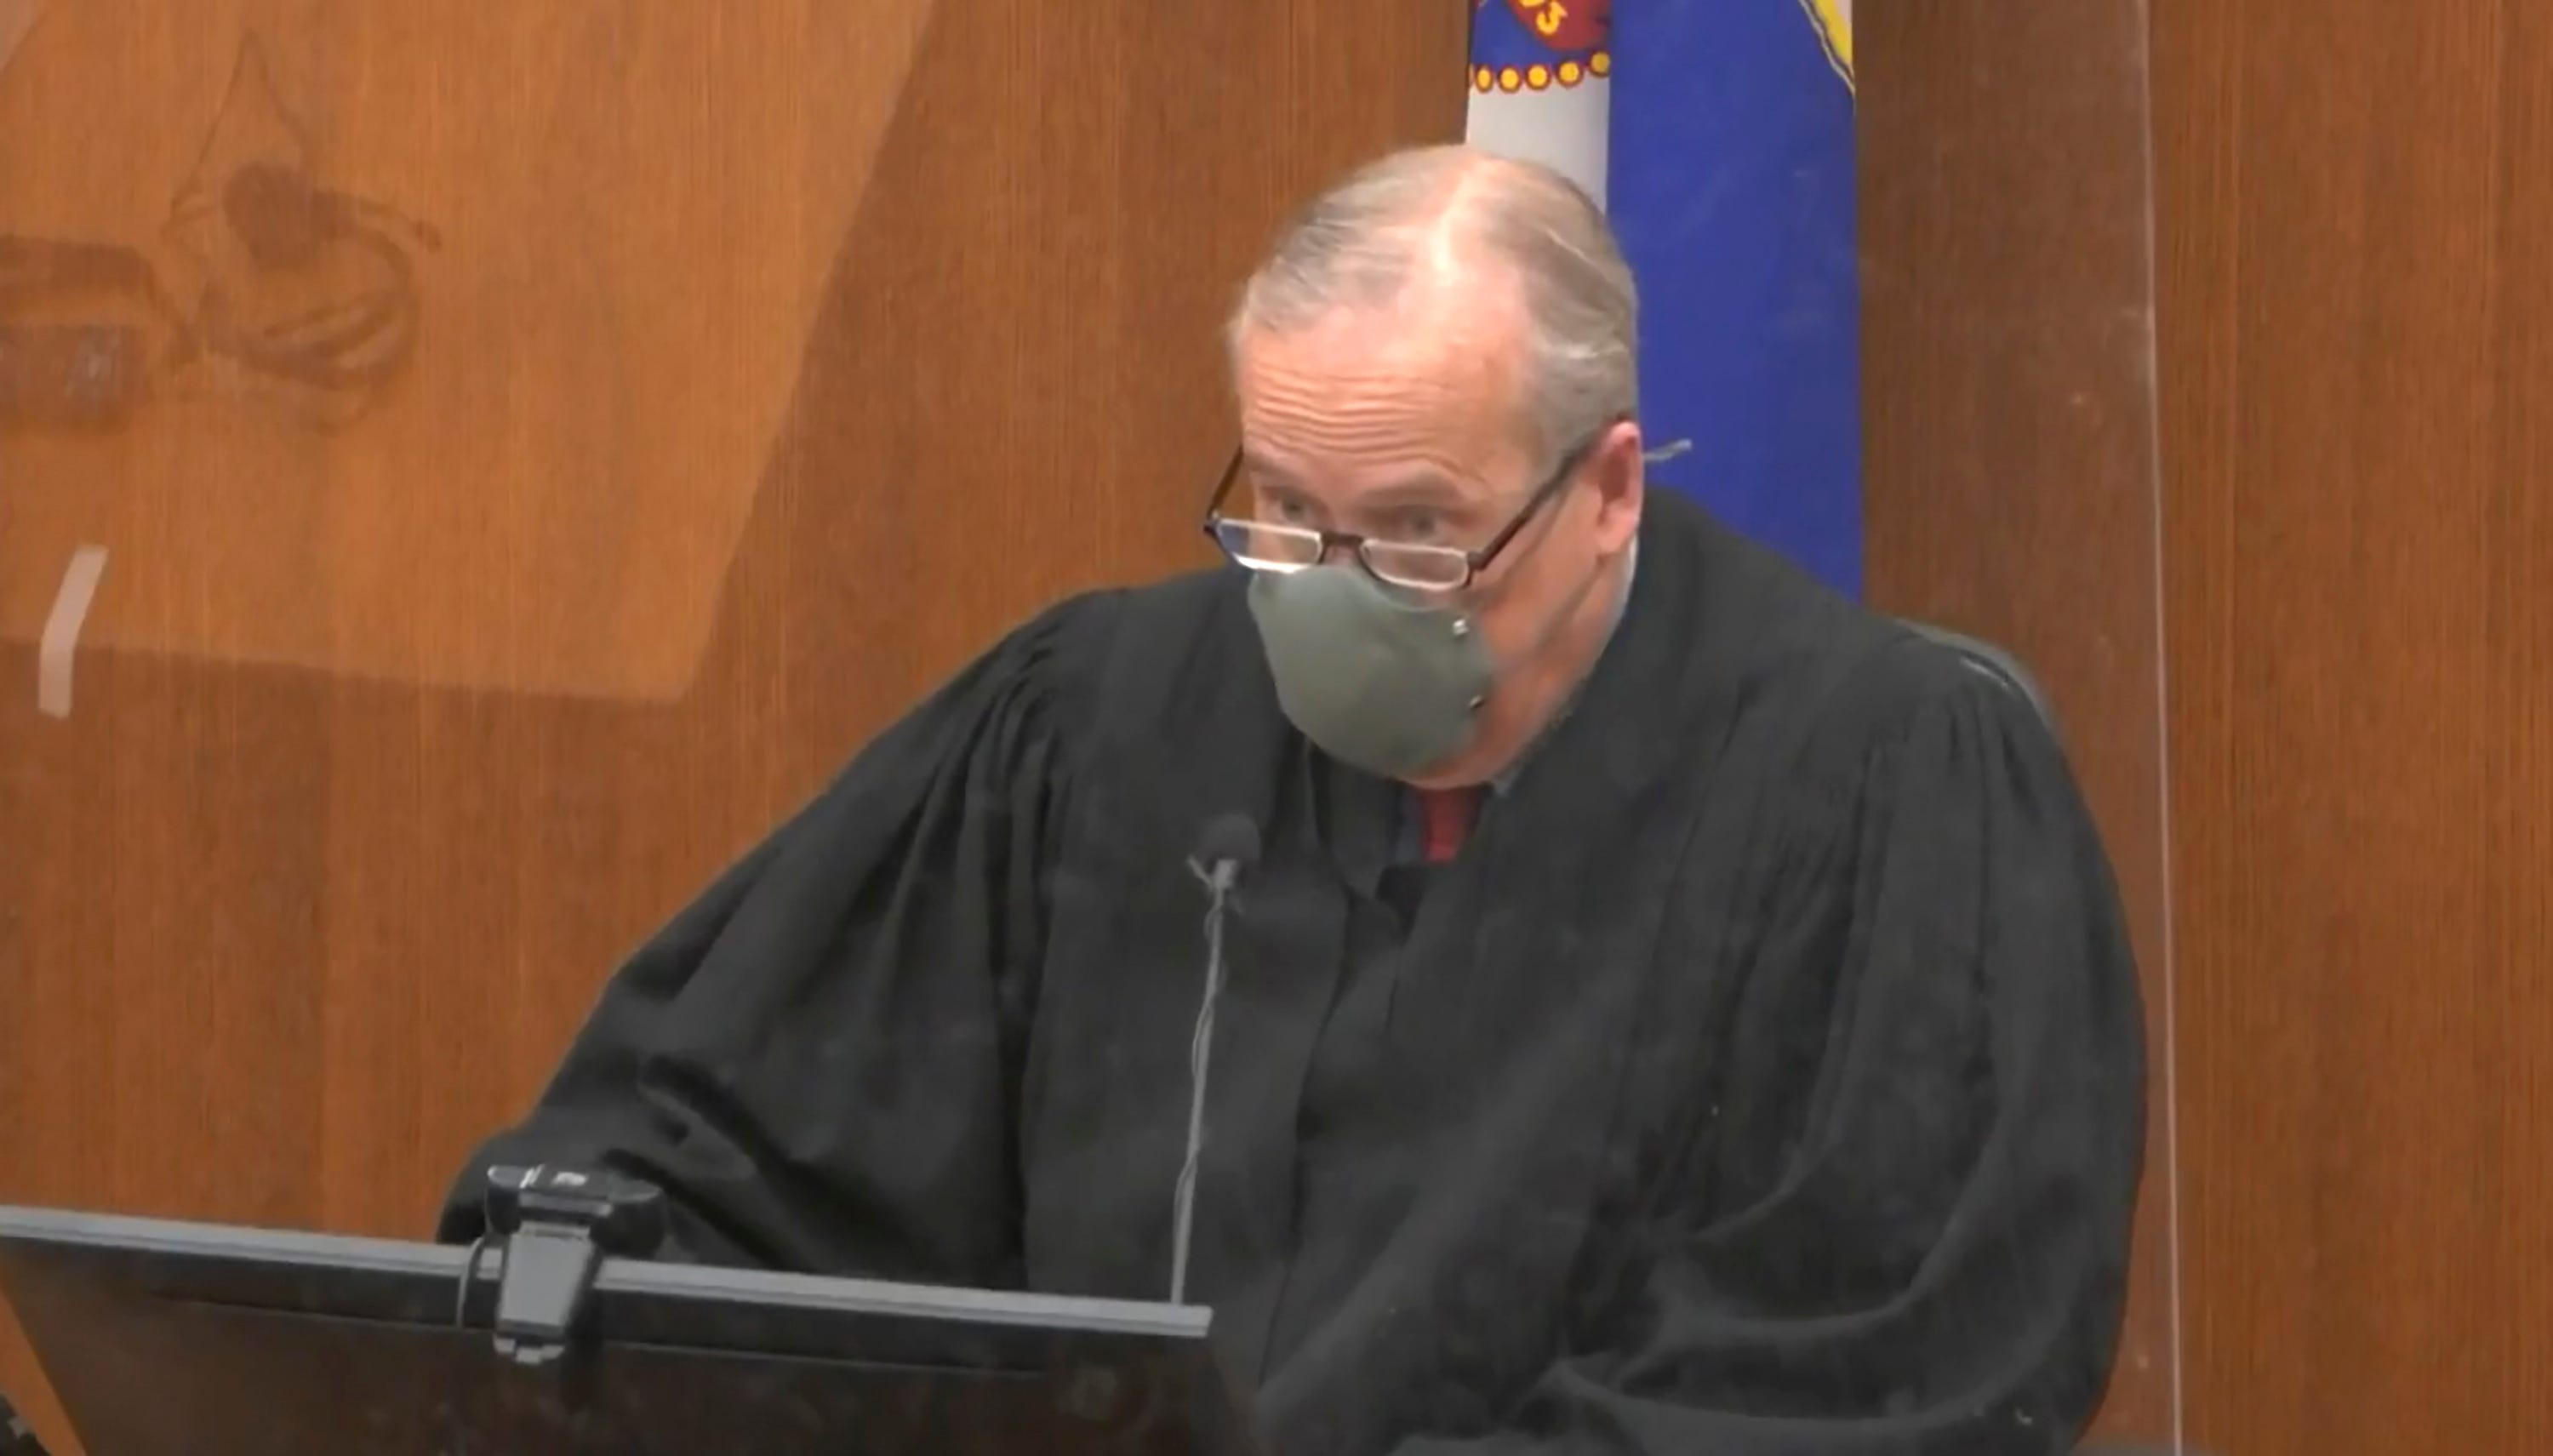 Judge limits evidence, refuses to move trial in Floyd death 2